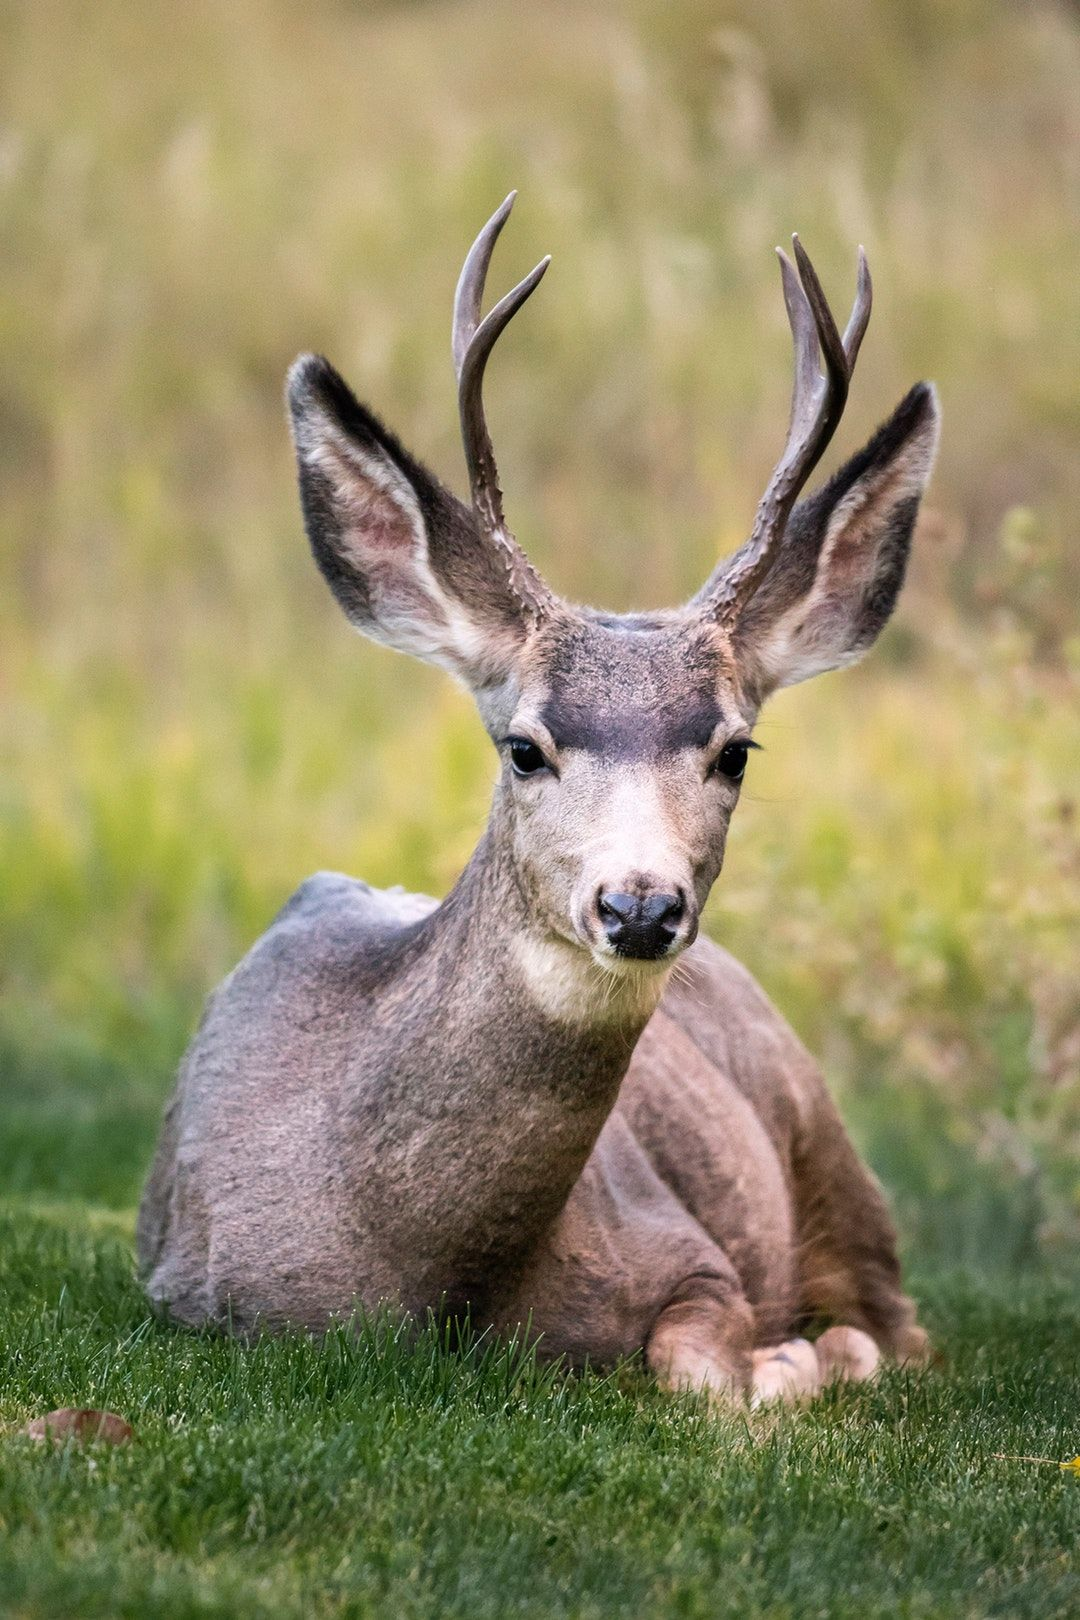 Download the perfect deer pictures. Find over 100+ of the